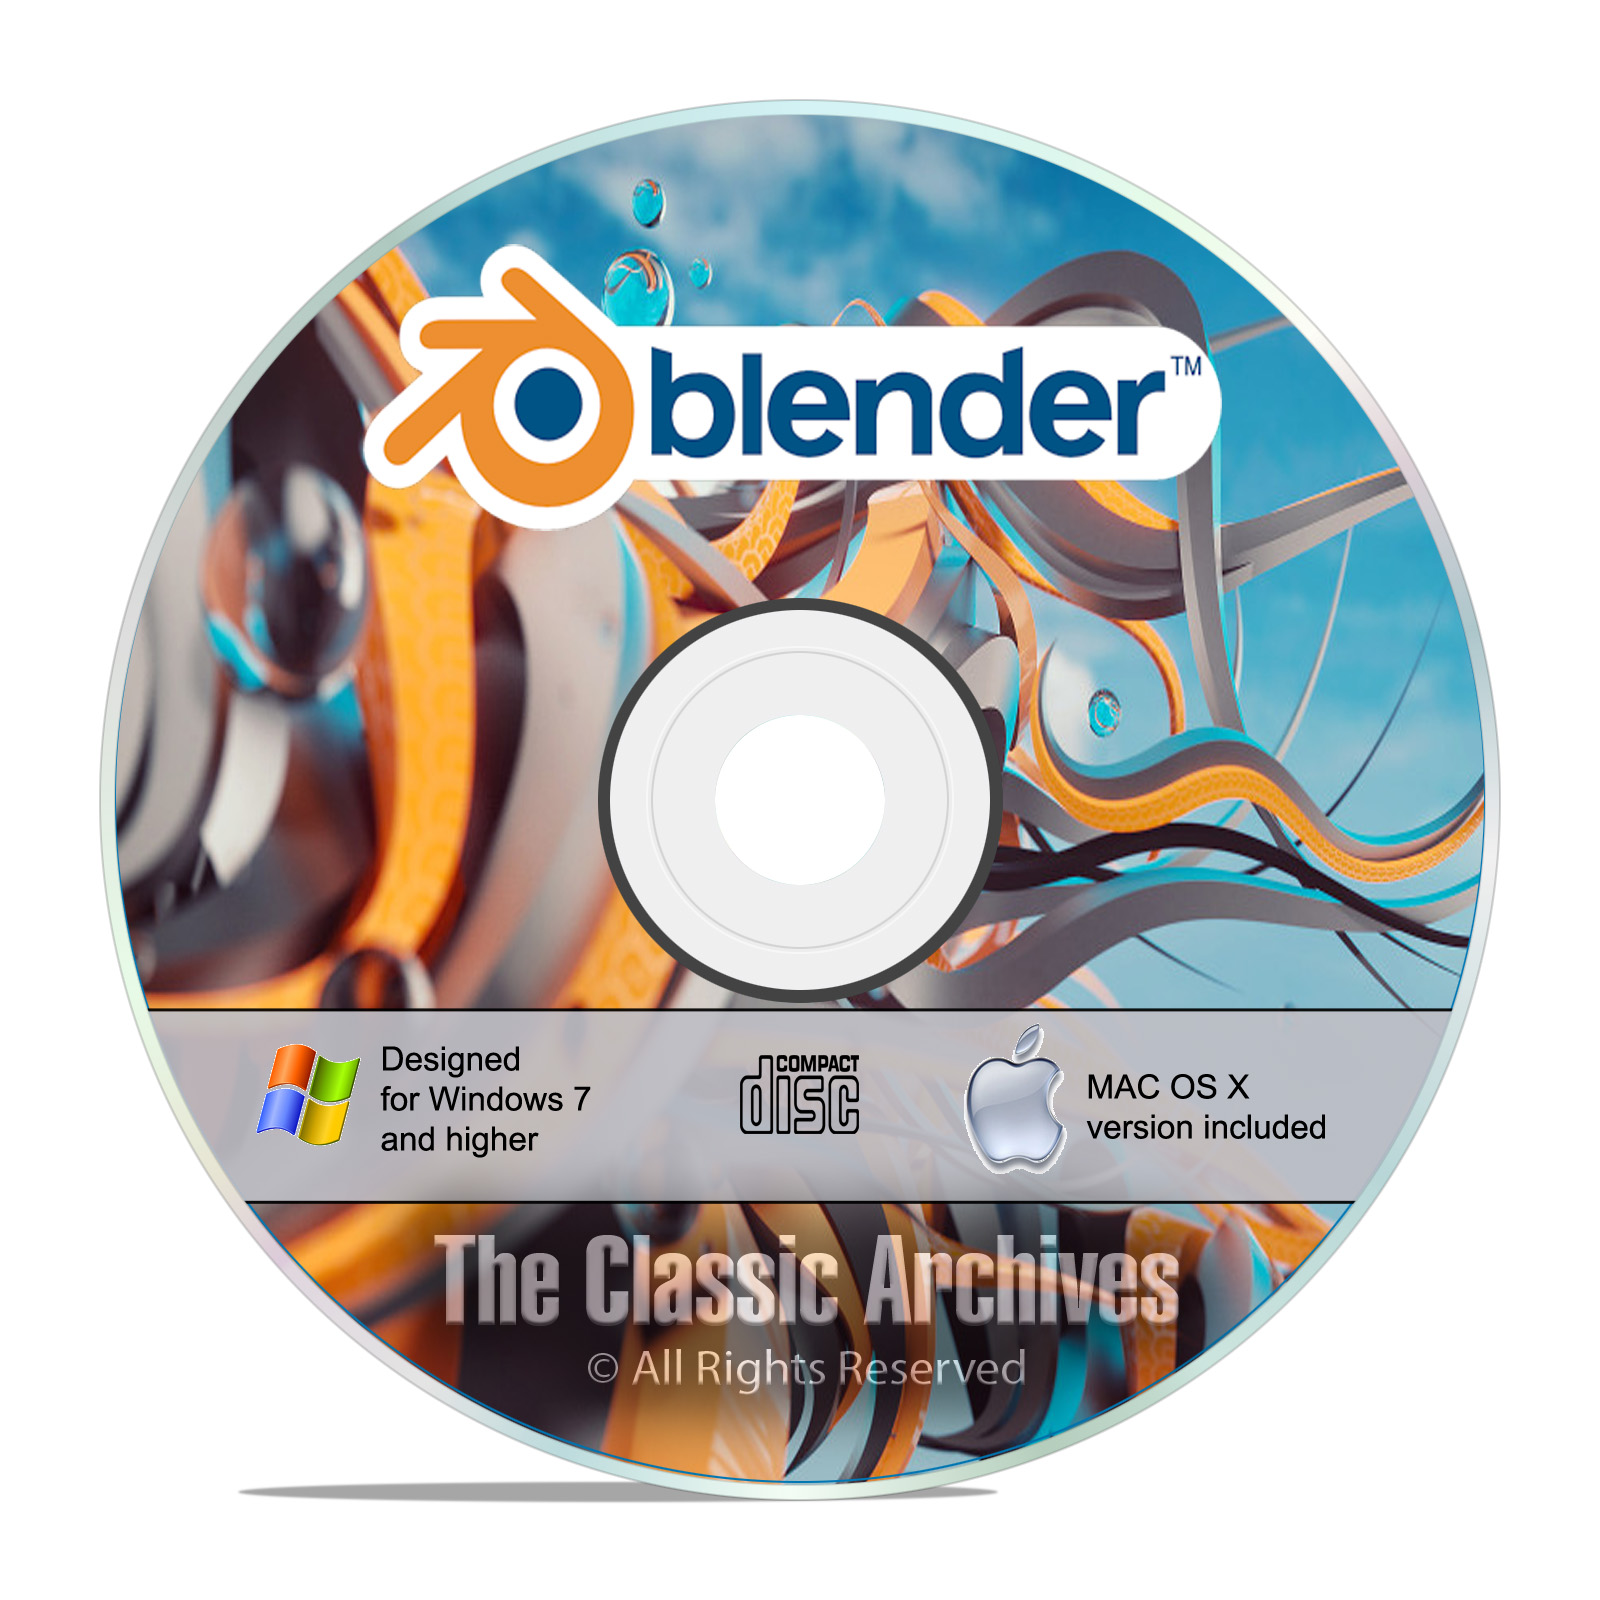 Blender 3d Graphic Design Animation Video Game Creation Software Cd Ca F26 6 49 The Classic Archives Shed Gazebo Plans Vintage Books Magazines Comics On Dvd Professional Shed Gazebo Plans